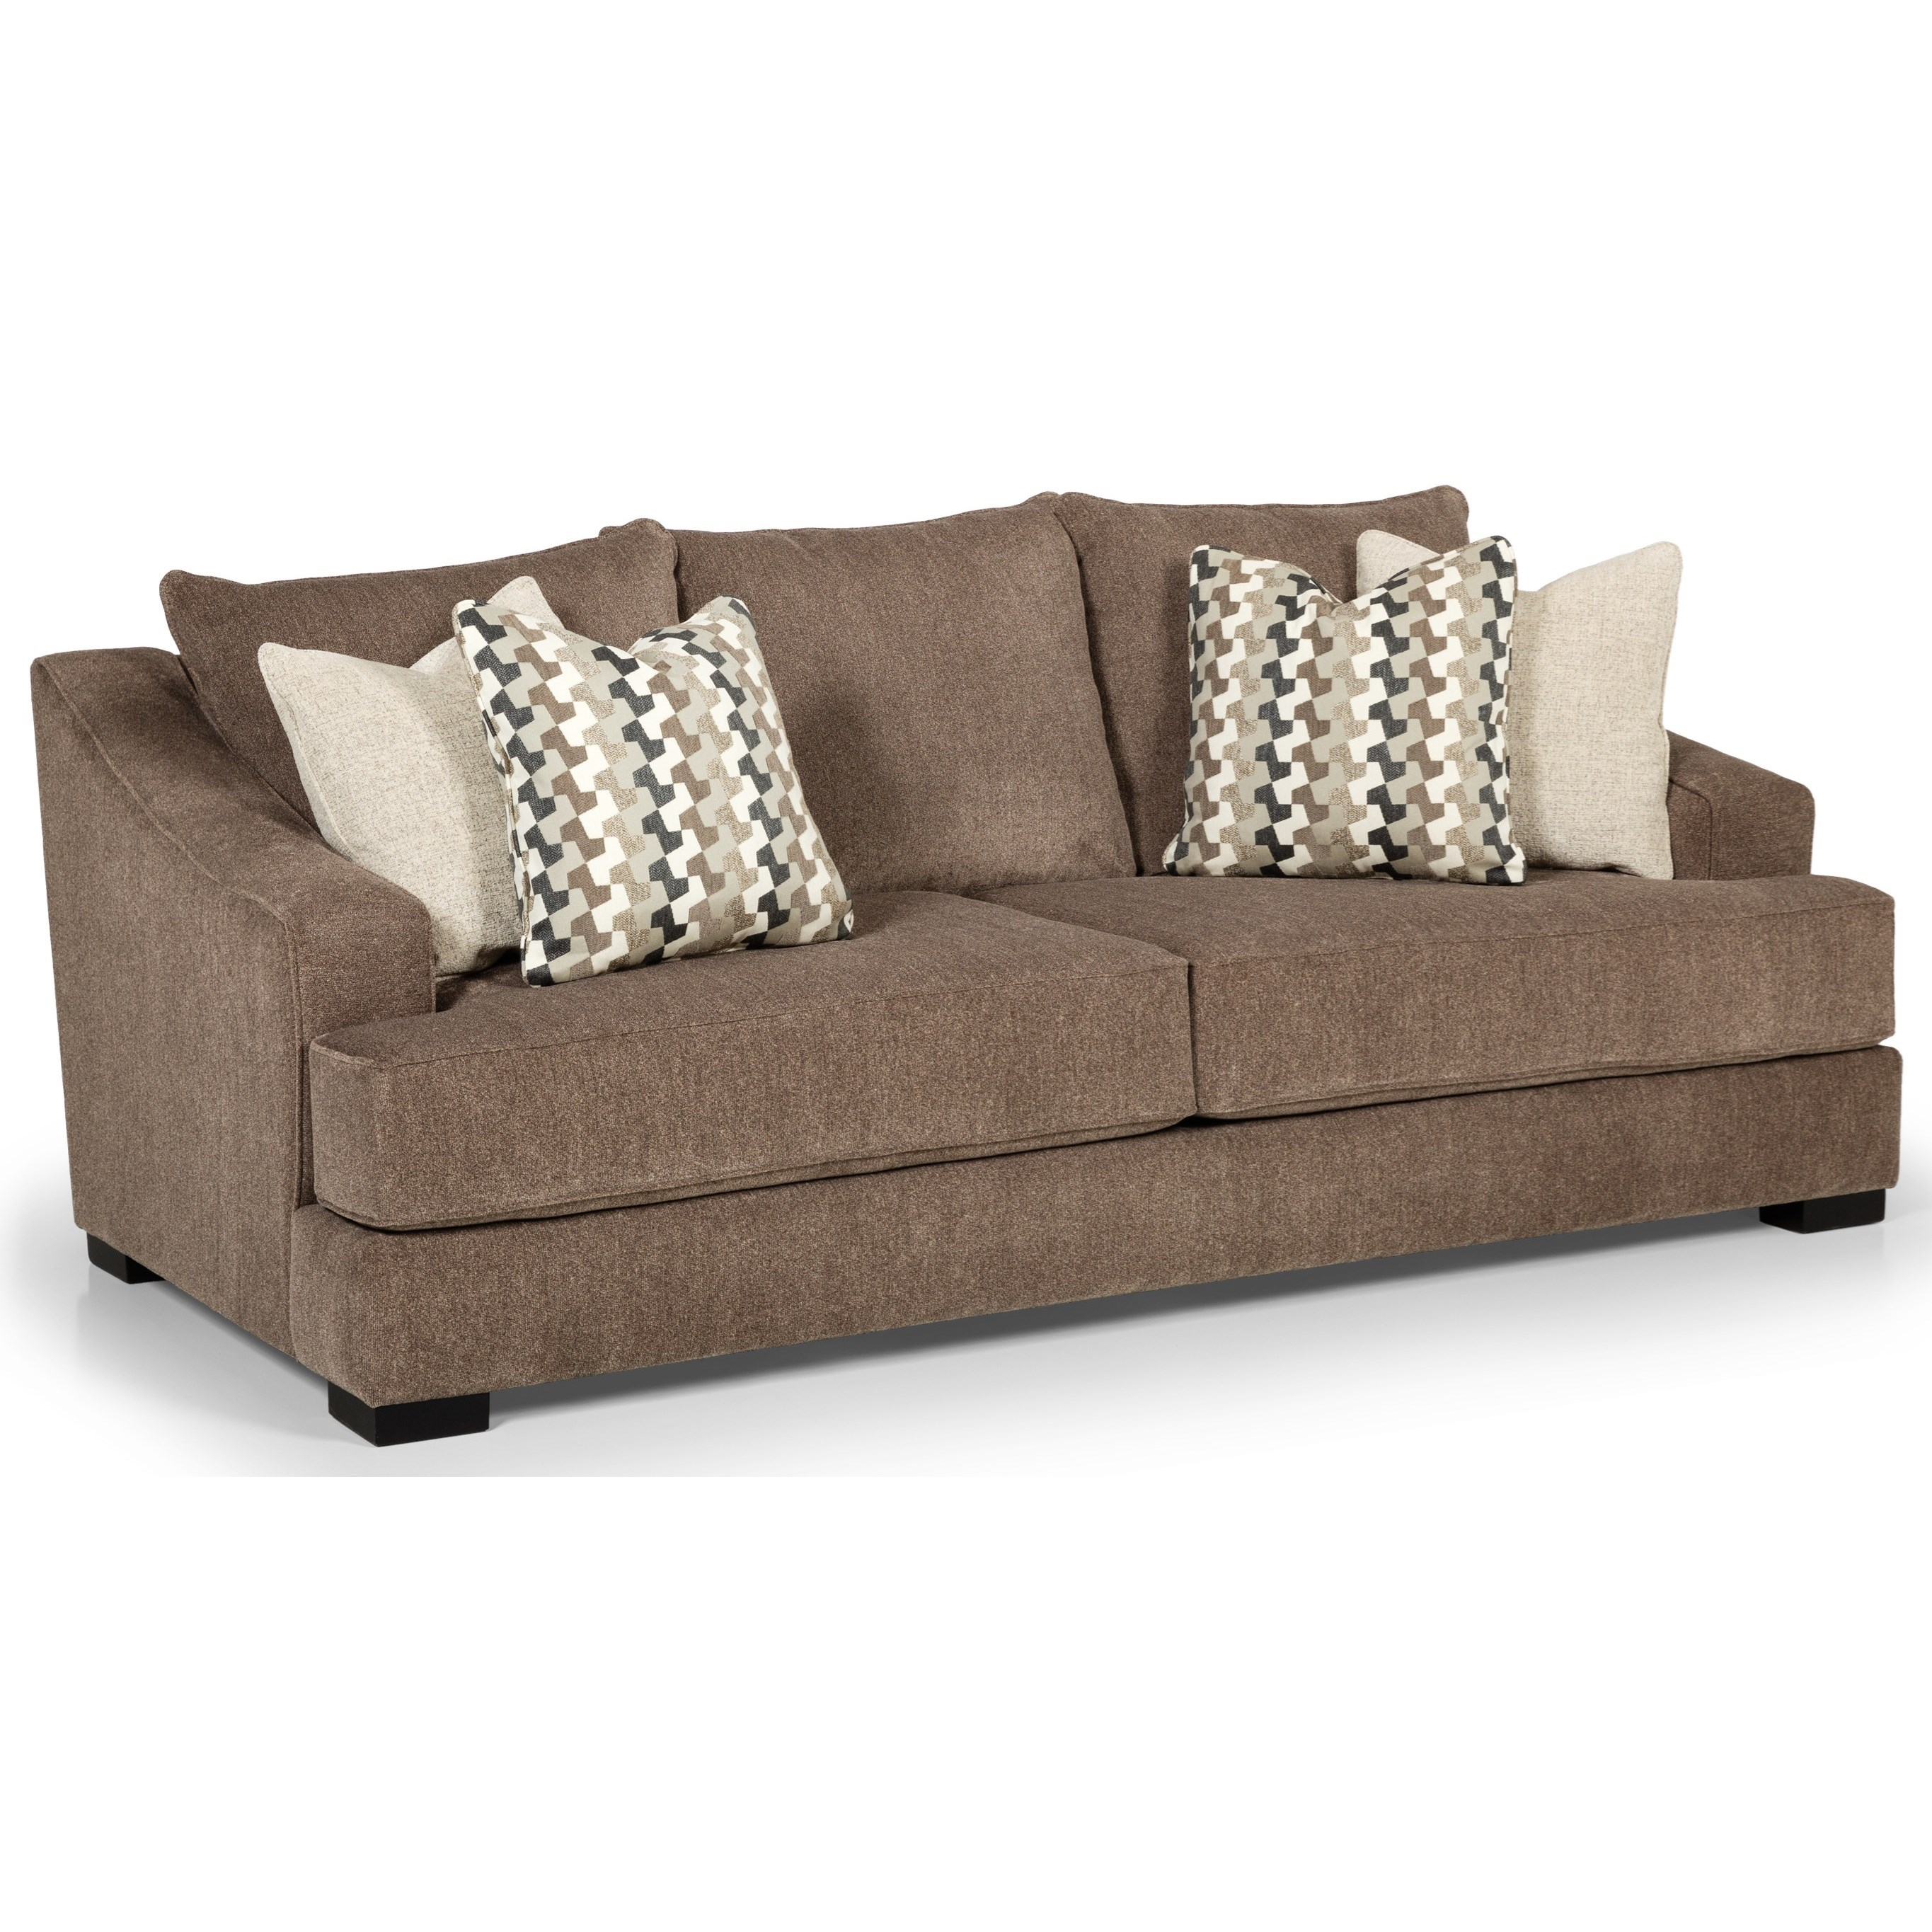 376 Sofa by Stanton at Wilson's Furniture